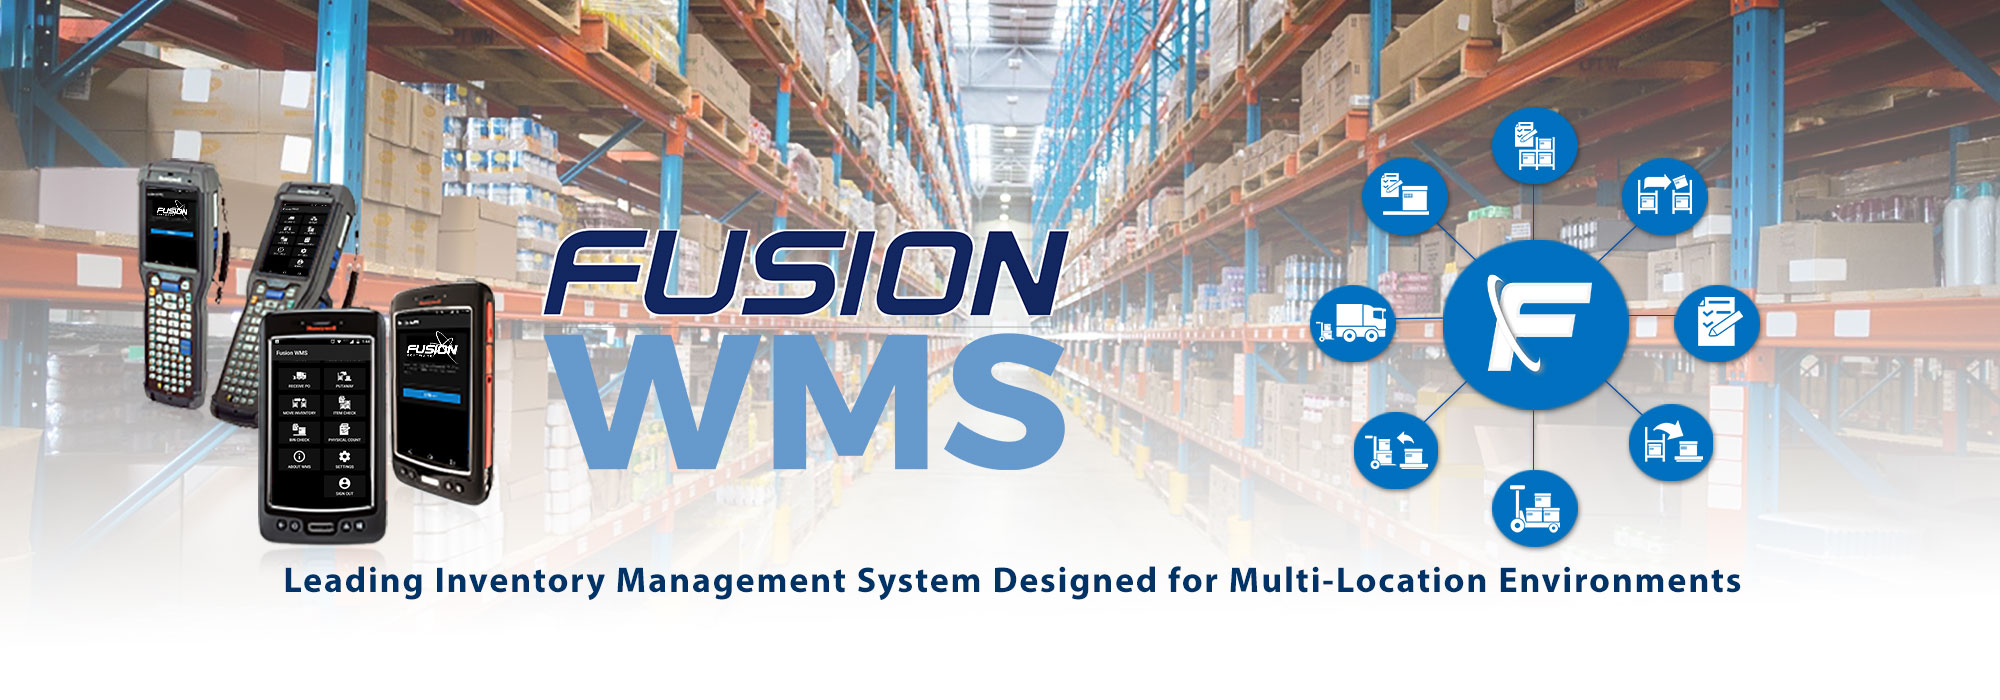 fusion-wms-bannerstyle